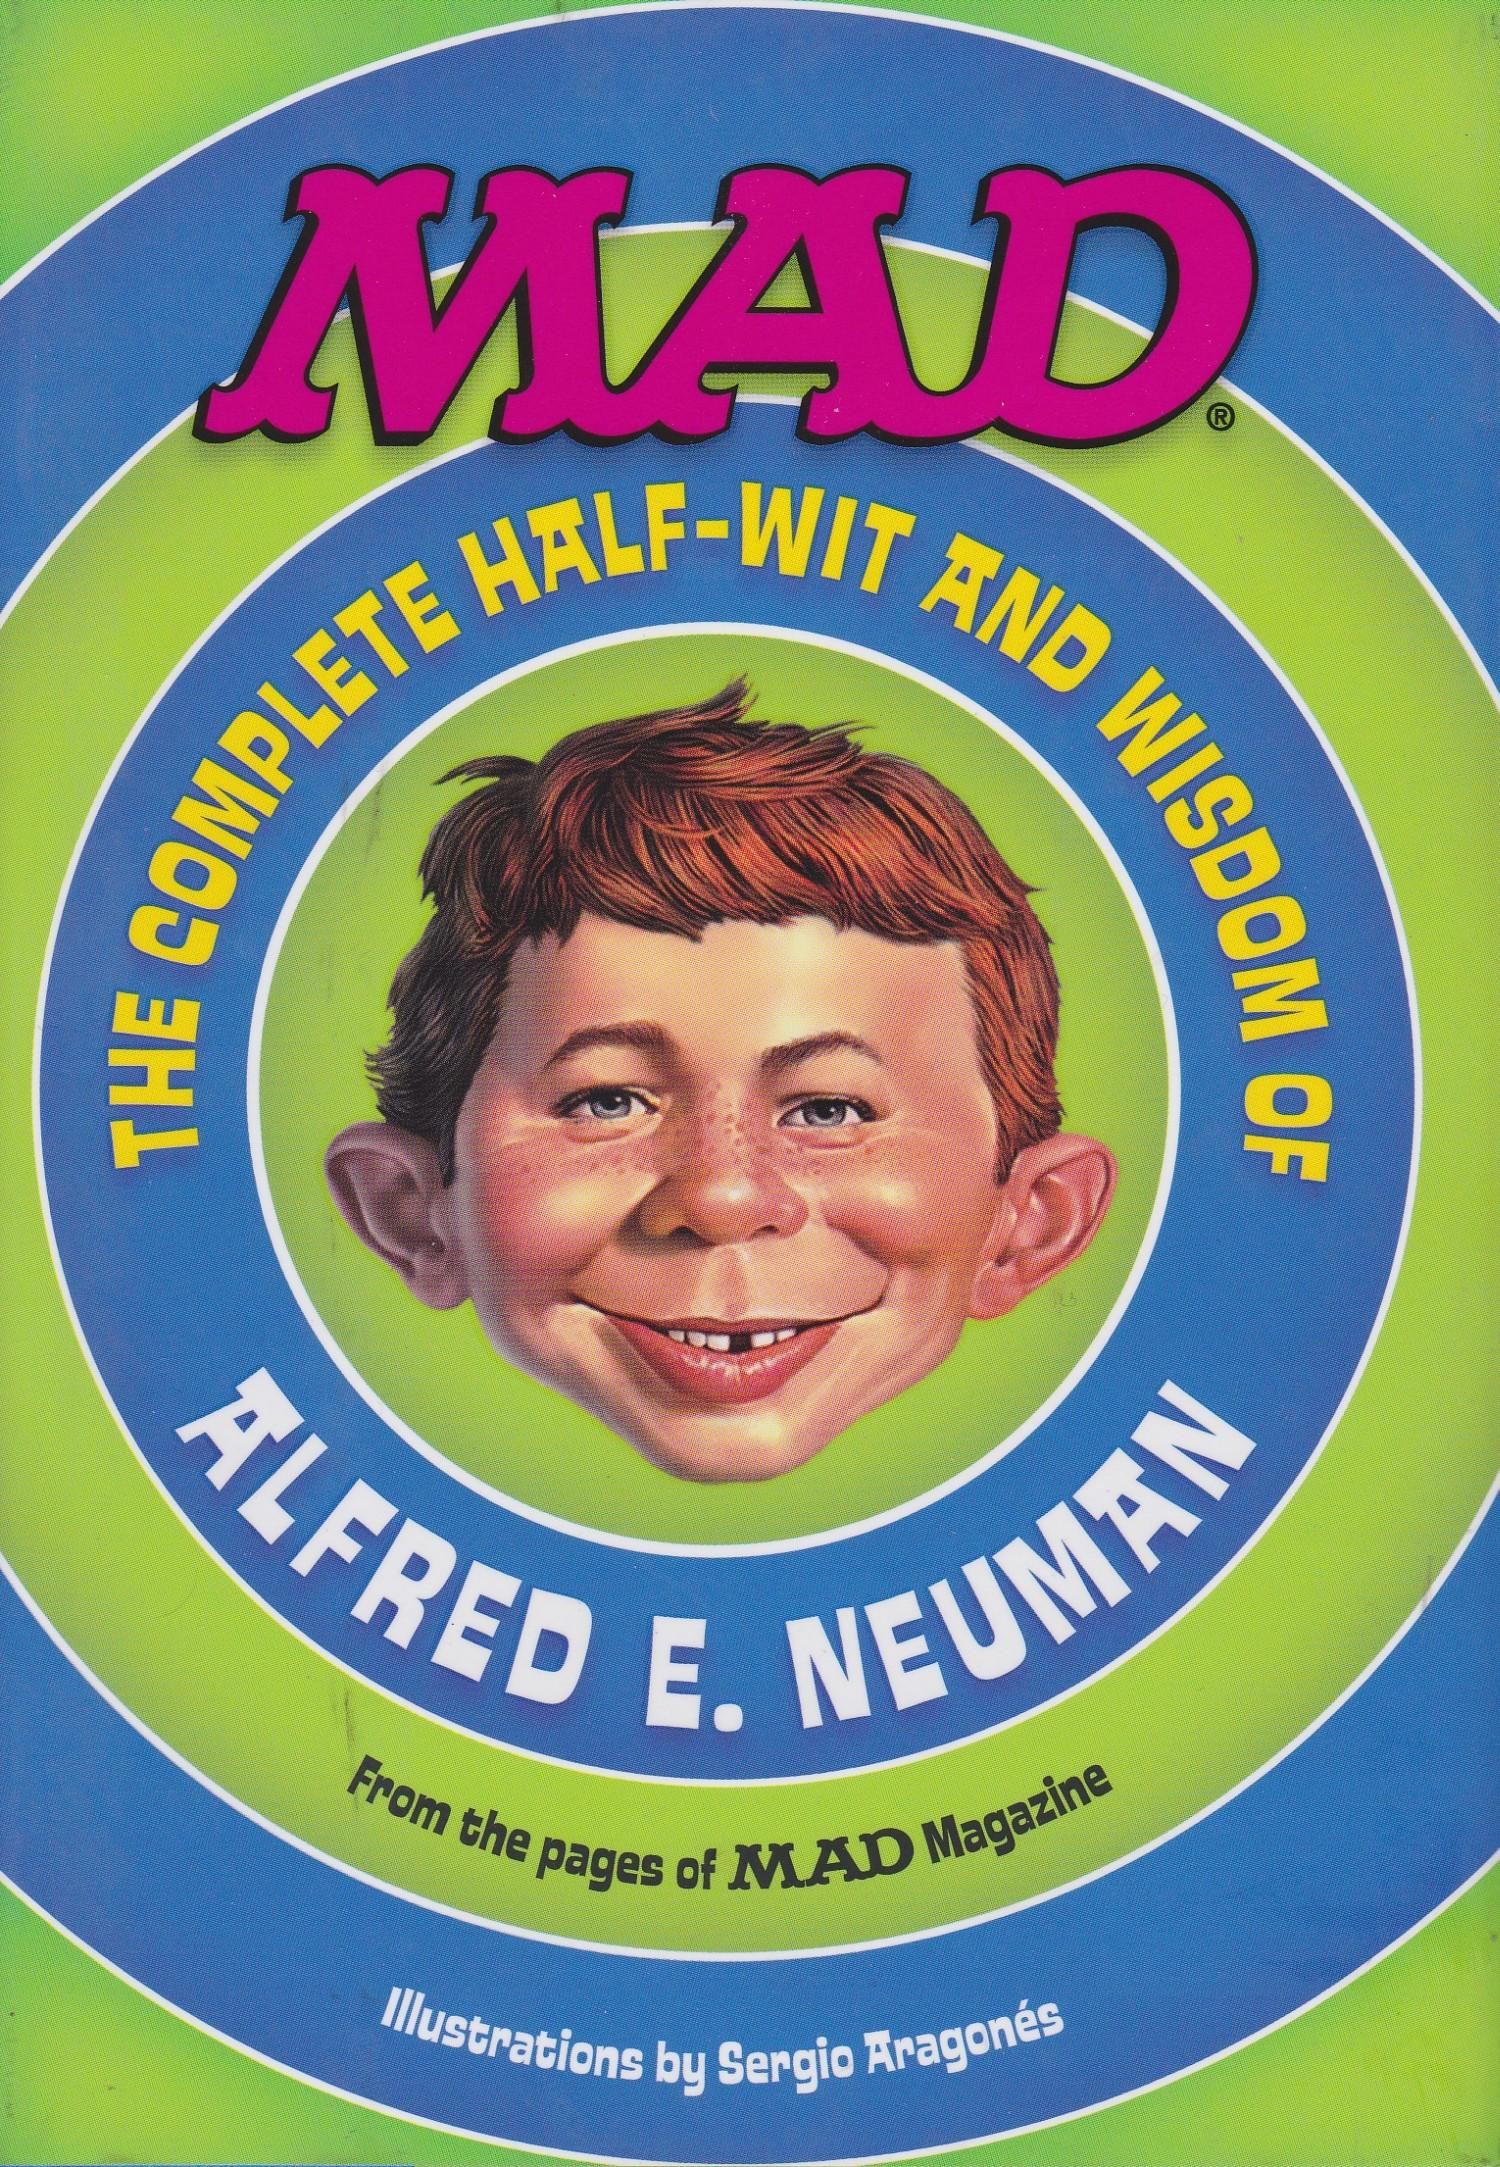 MAD: The Complete Half-Wit and Wisdom of Alfred E. Neuman • USA • 1st Edition - New York